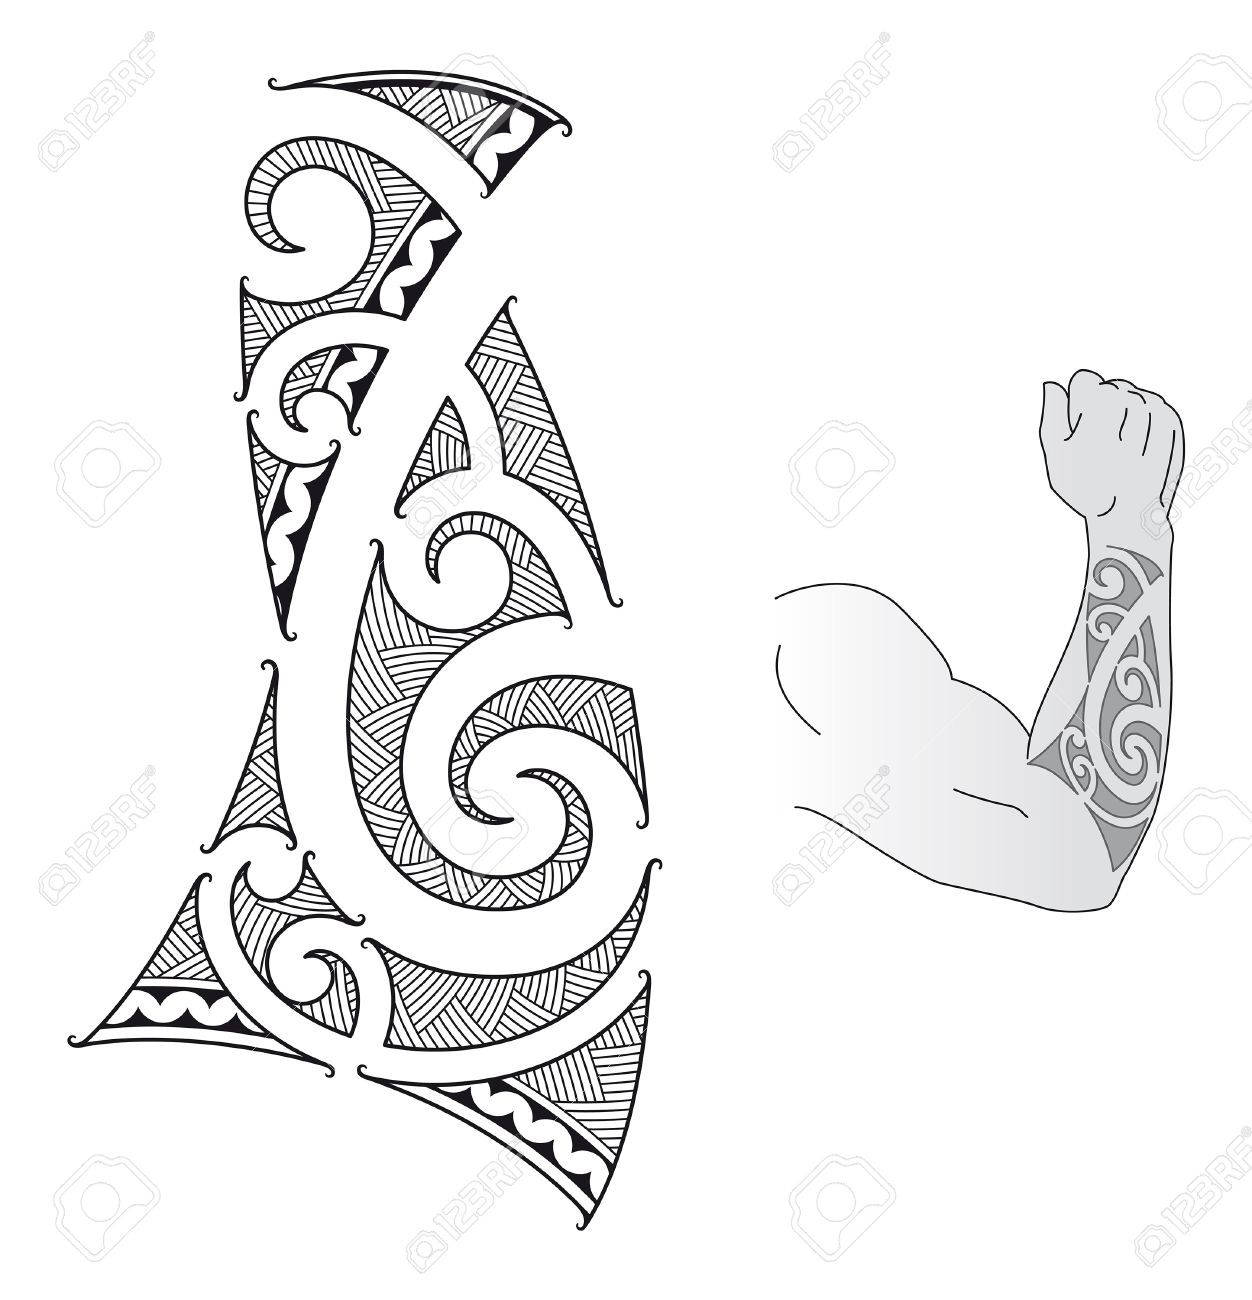 Maori Style Tattoo Design Fit For A Forearm Royalty Free Cliparts